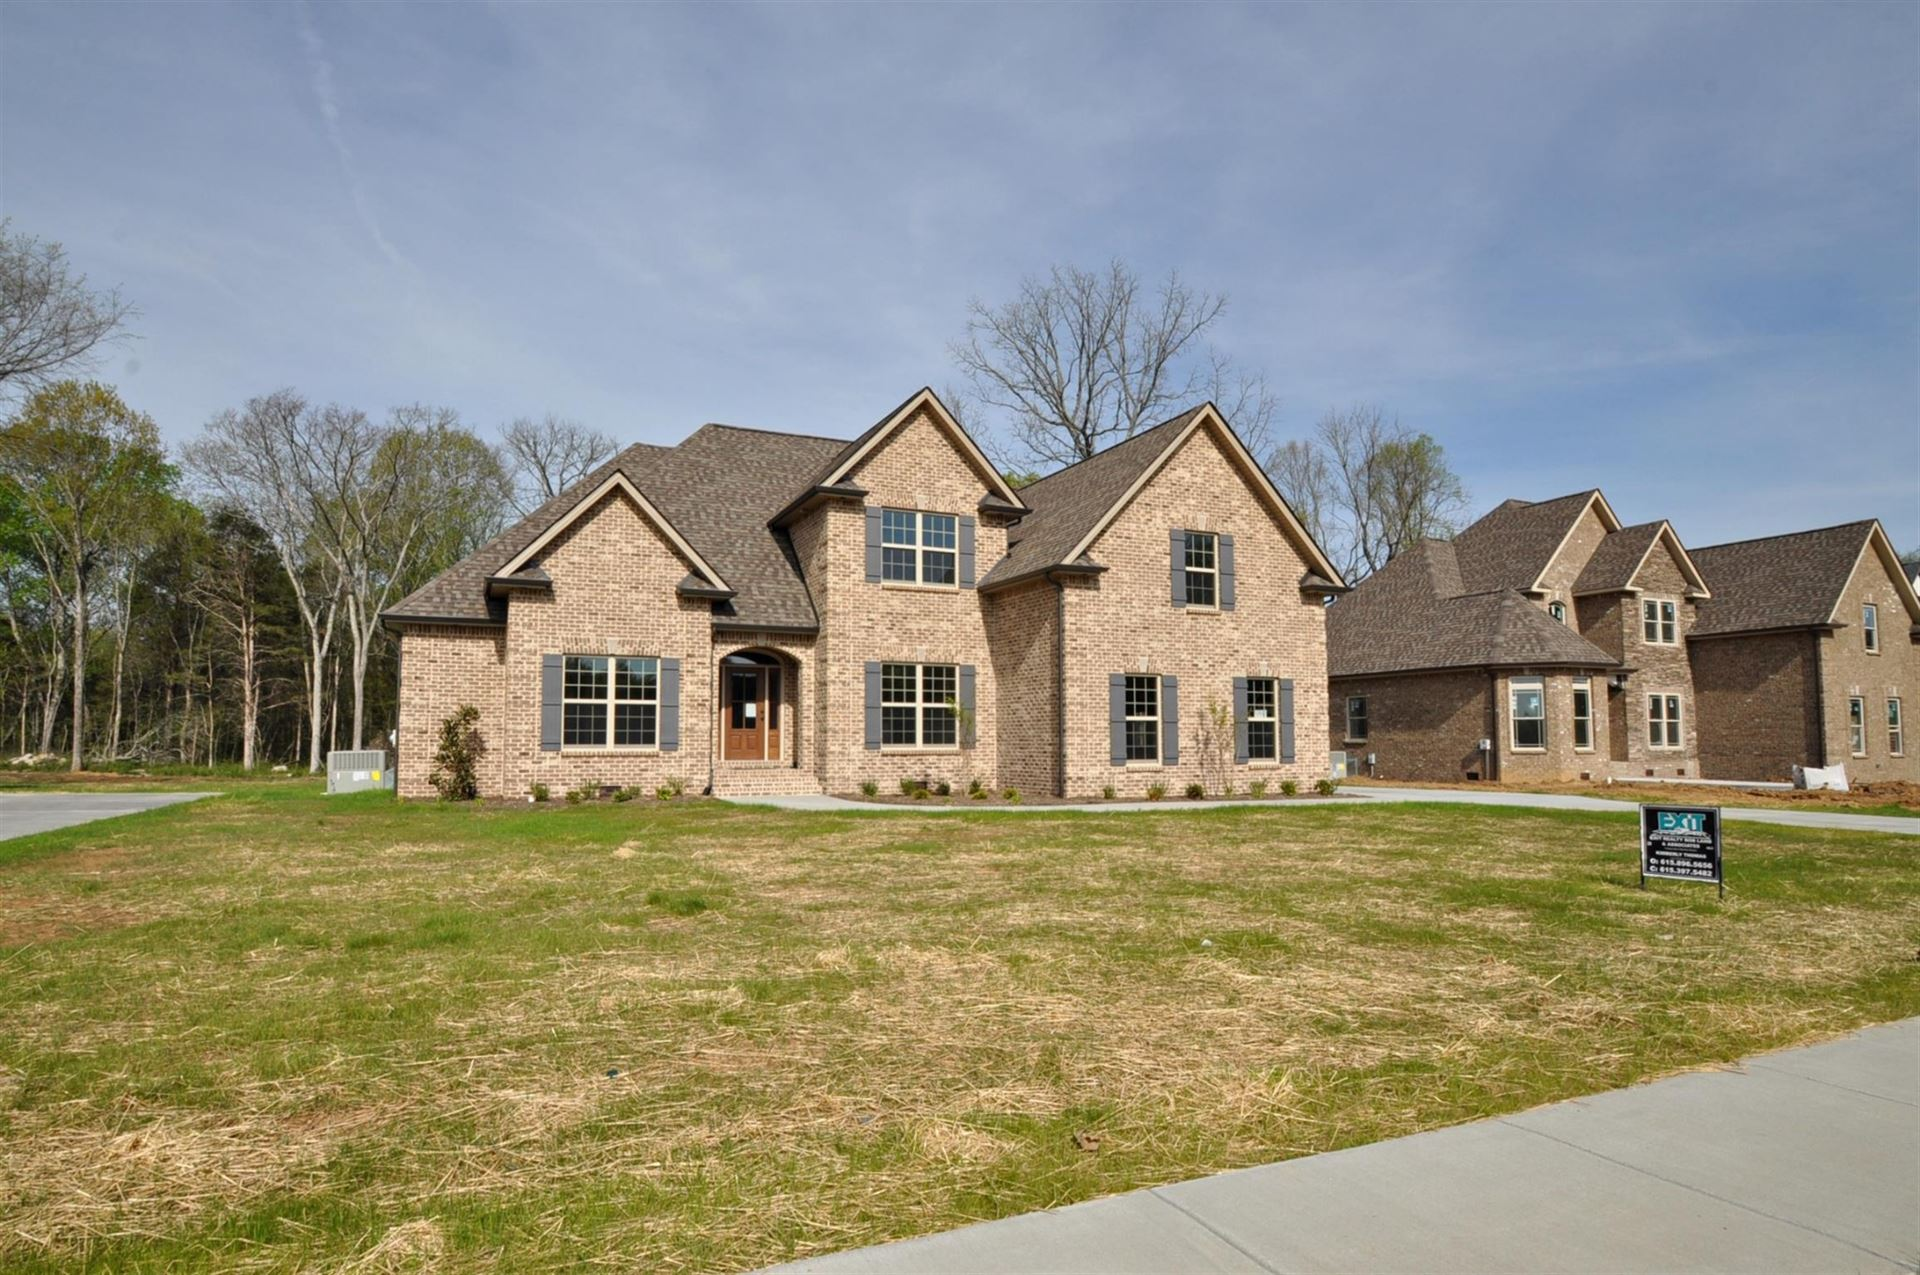 1509 Addi Jo Court, Christiana, TN 37037 - MLS#: 2226353